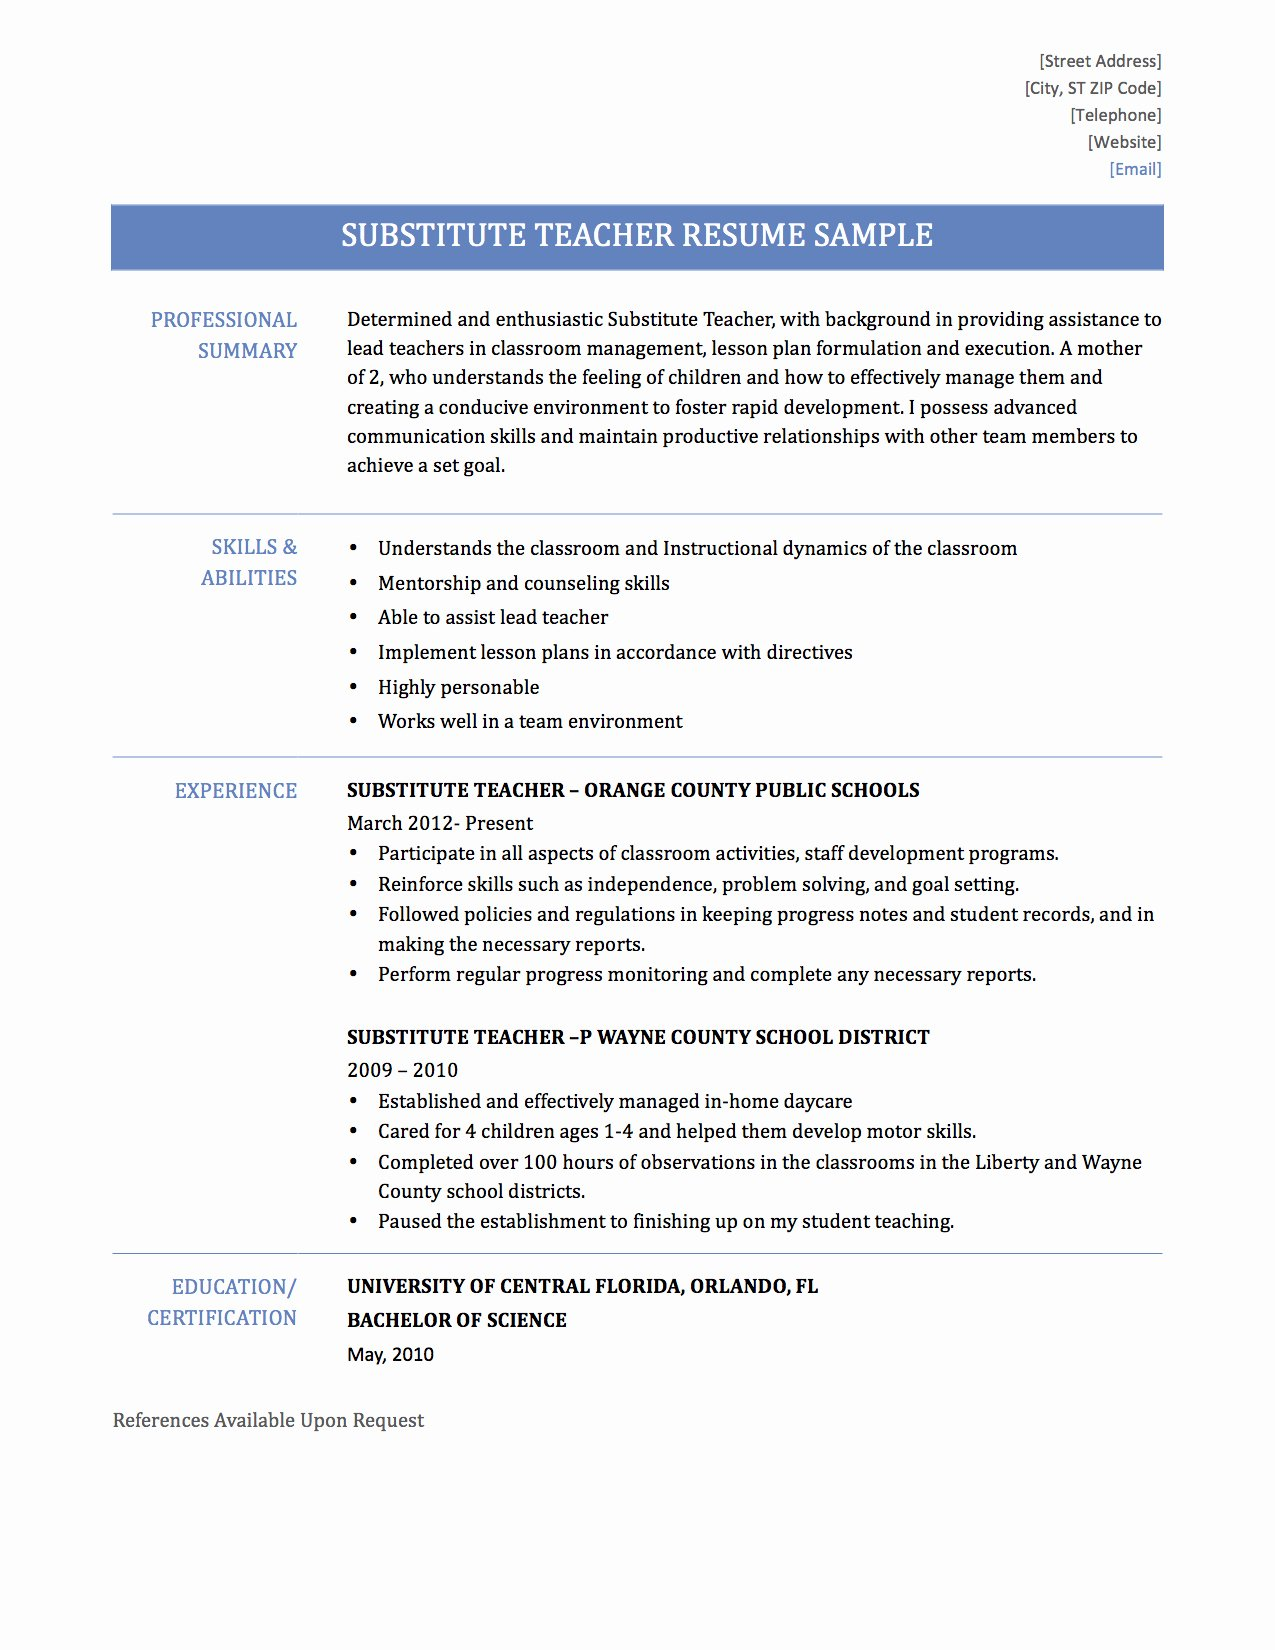 Confortable Listing Student Teaching Experience Resume